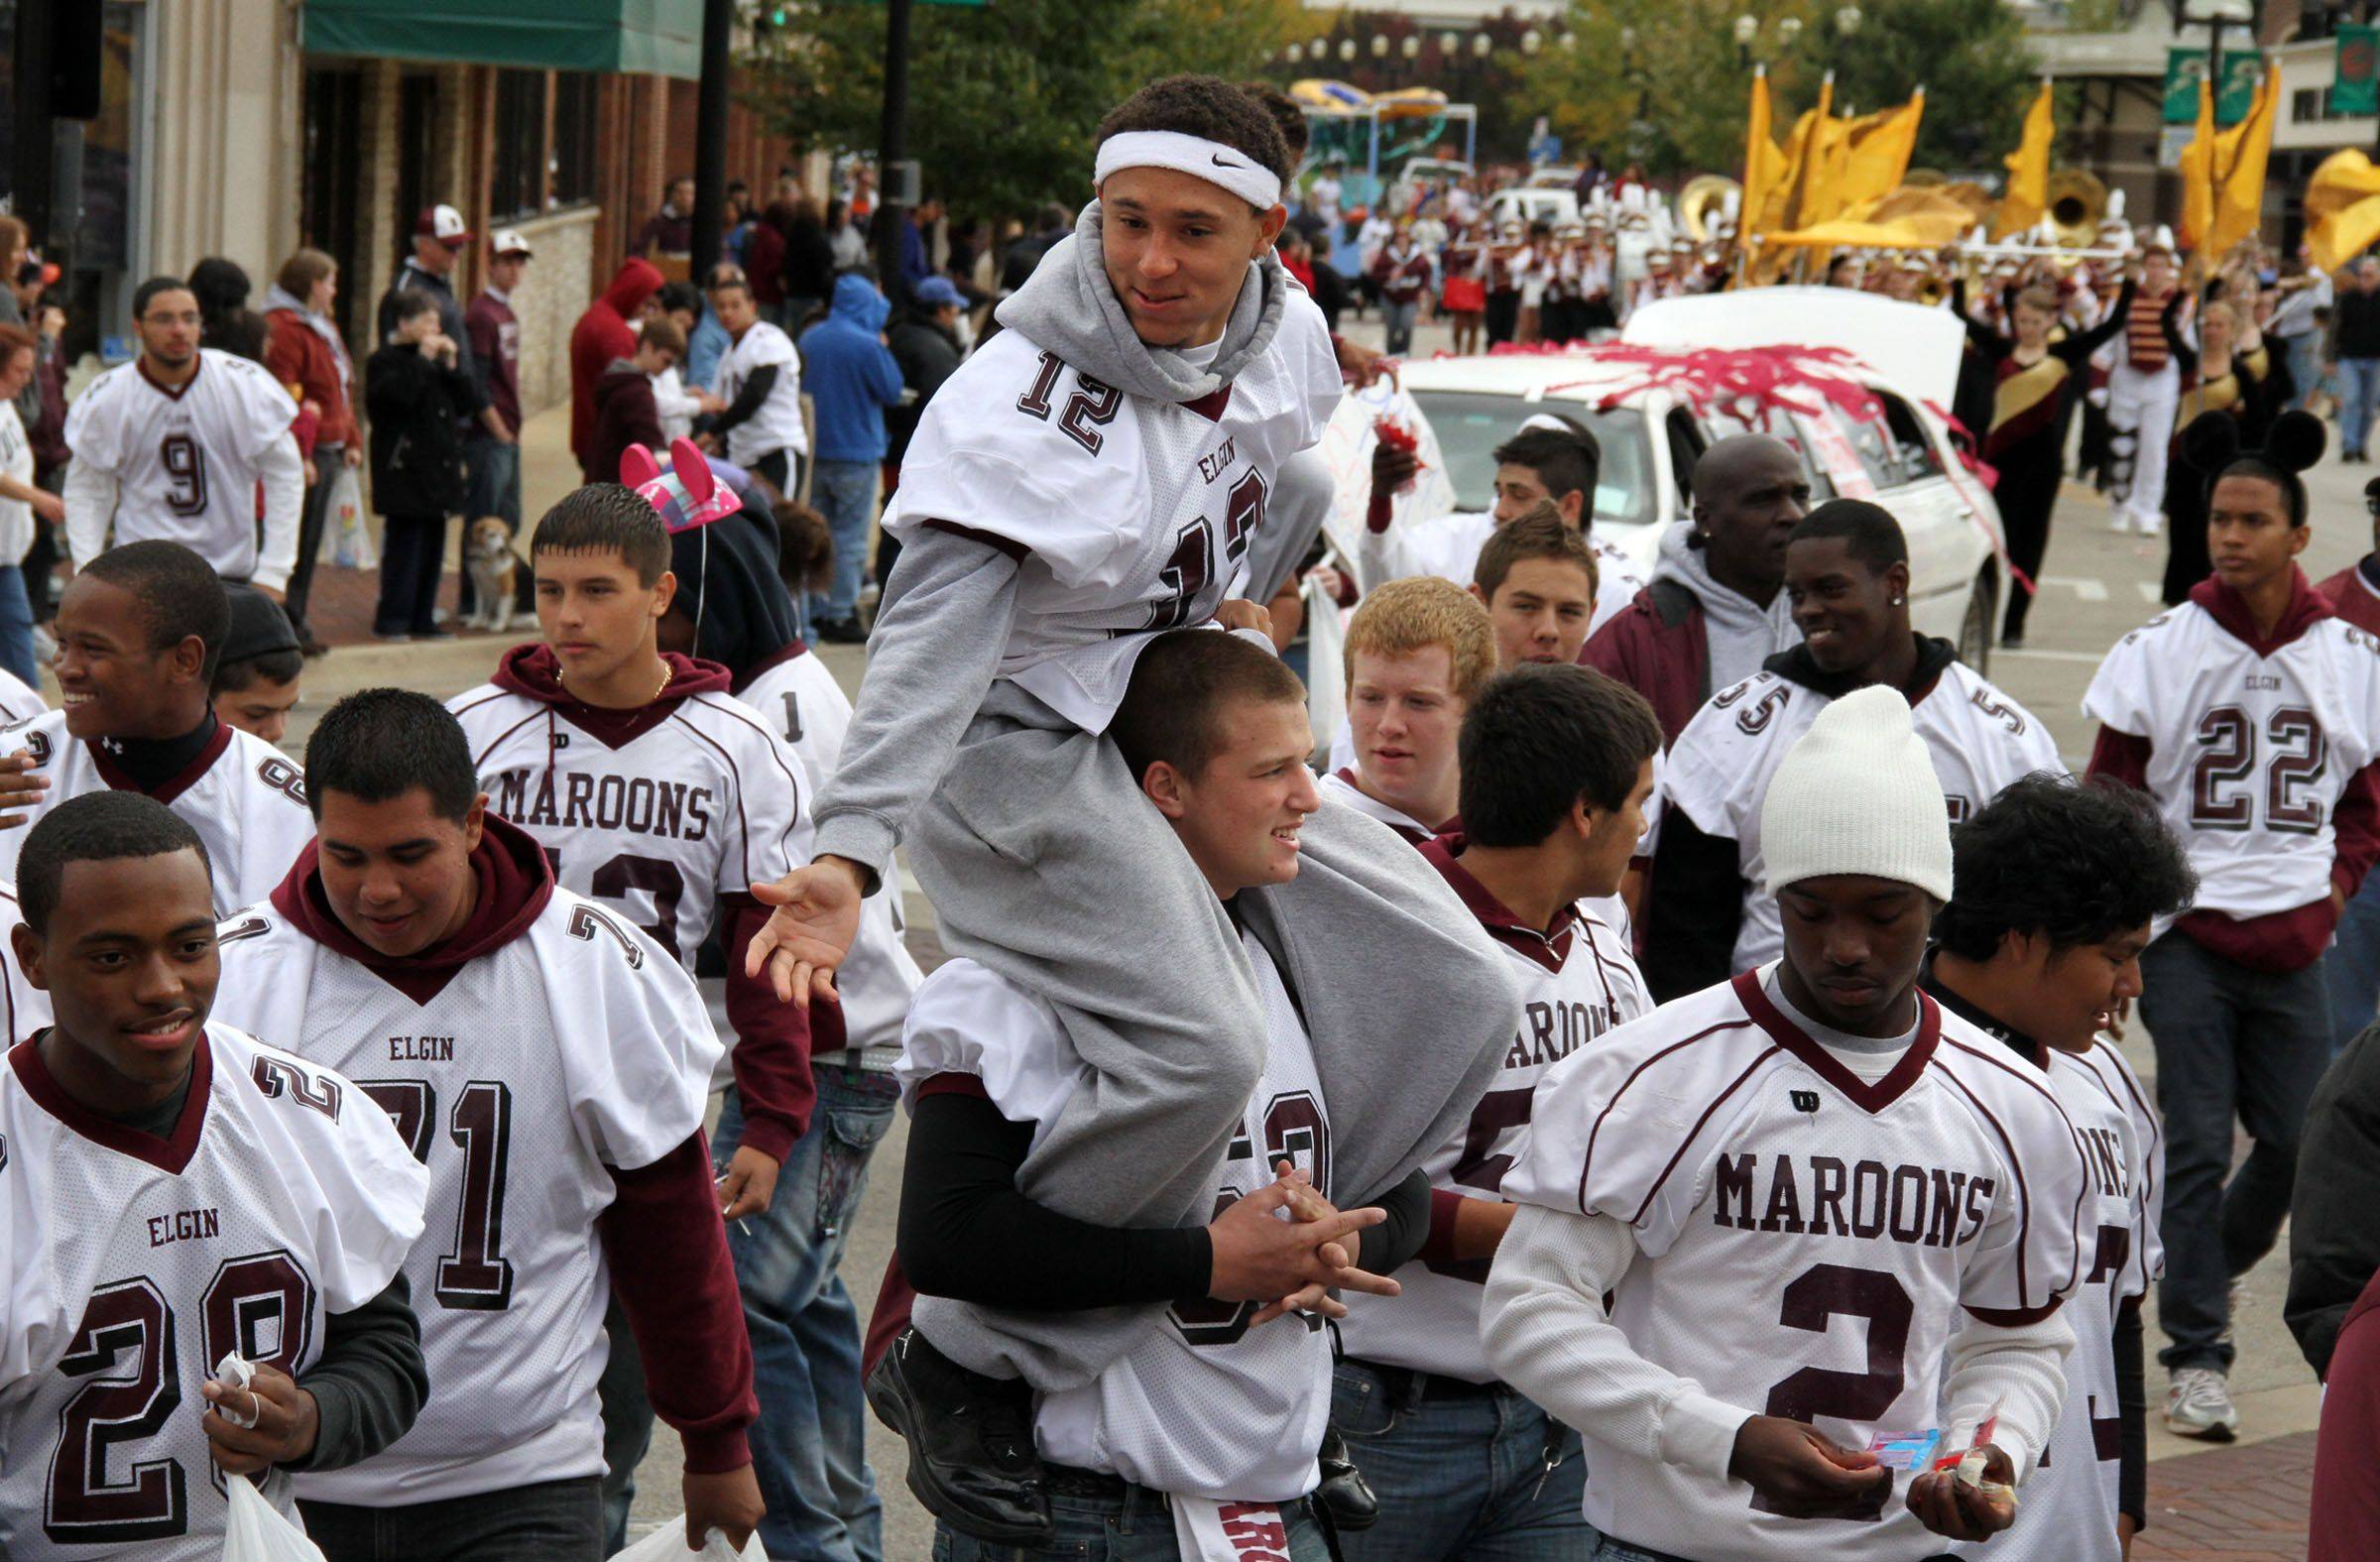 Elgin High School football Lee Jackson looks to pass candy to classmates as he gets a lift east on Chicago Street in Elgin during the school's homecoming parade through downtown Elgin on Sunday, October 3. The parade aslo included the school's marching band, soccer team, volleyball team, and several floats.